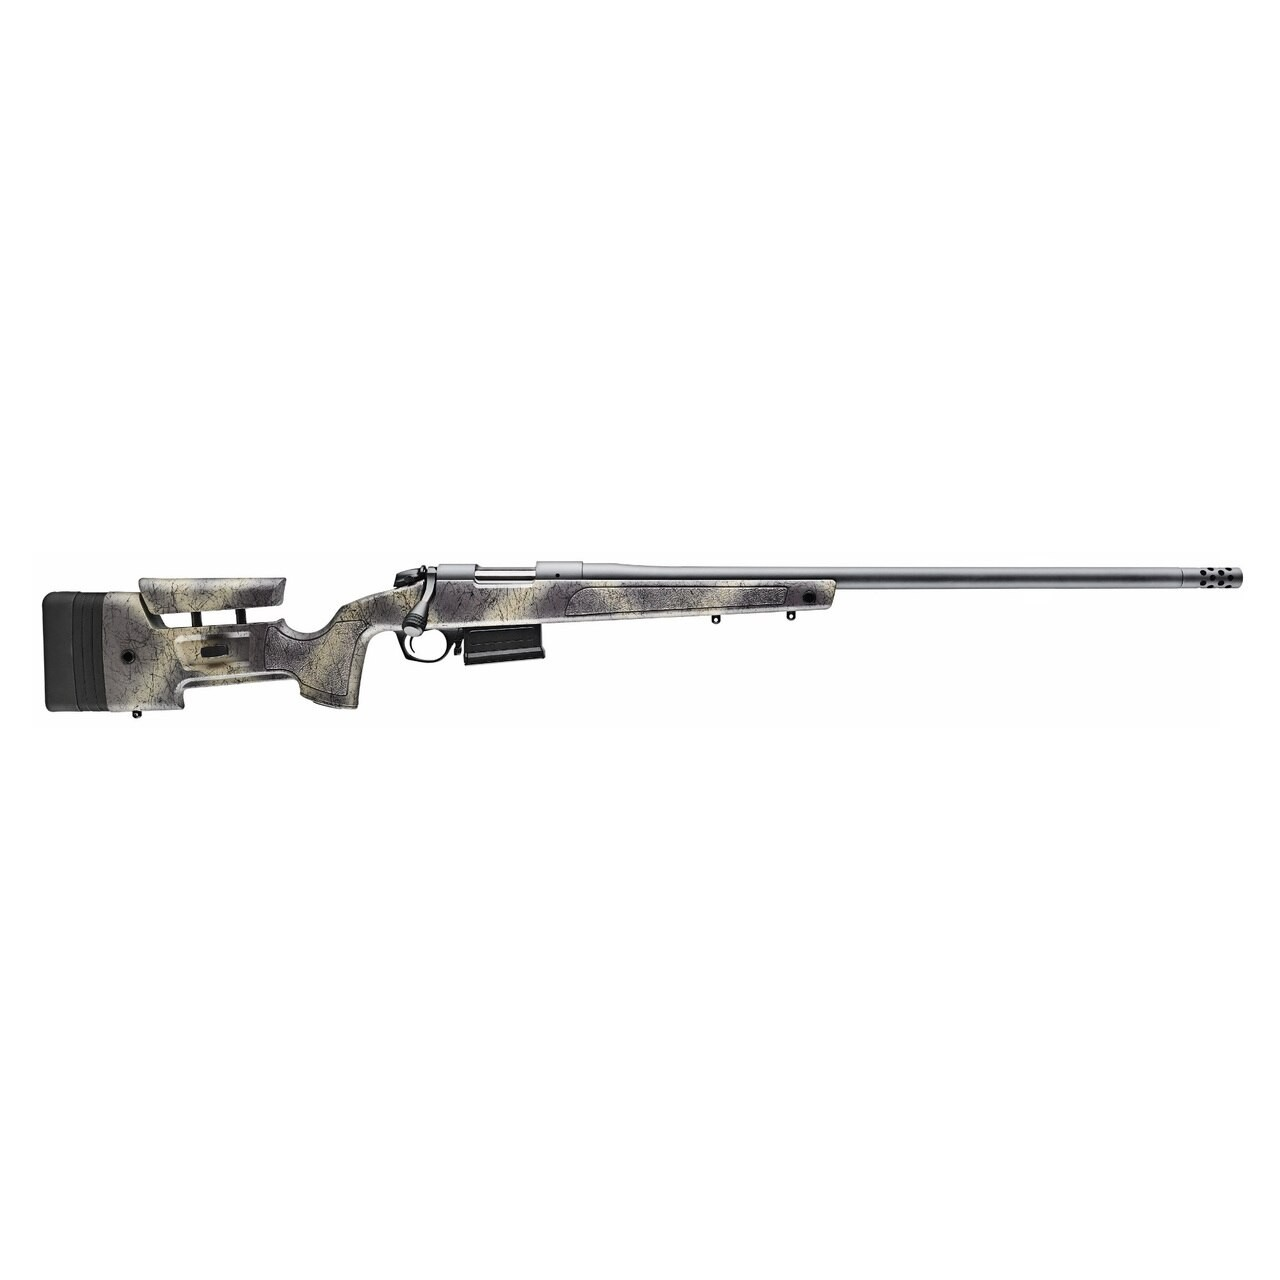 Bergara Rifles B-14 HMR Wilderness 300 Win Mag 5+1 26in. Woodland Camo Molded w/ Mini-Chassis Stock Matte Blued Right Hand